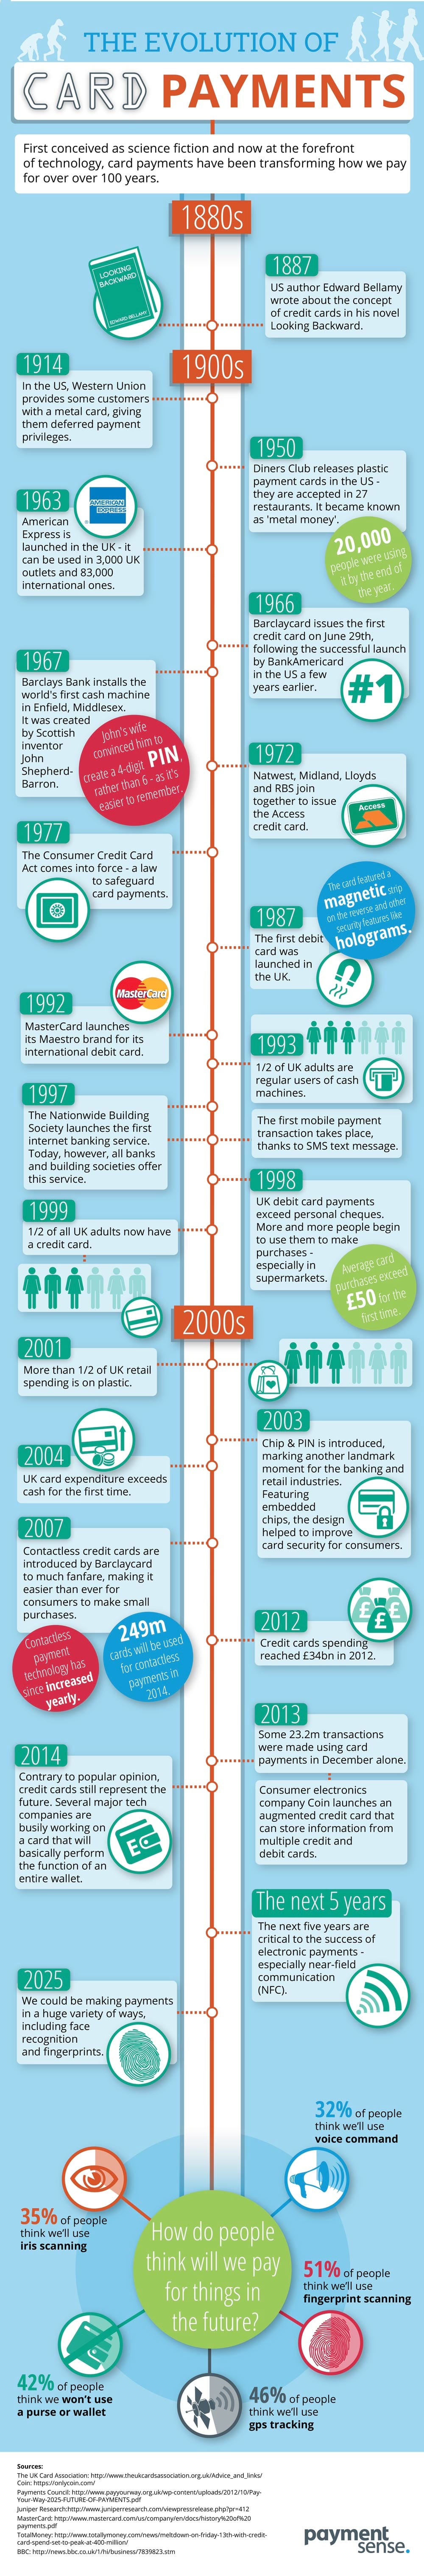 evolution of card payments infographic